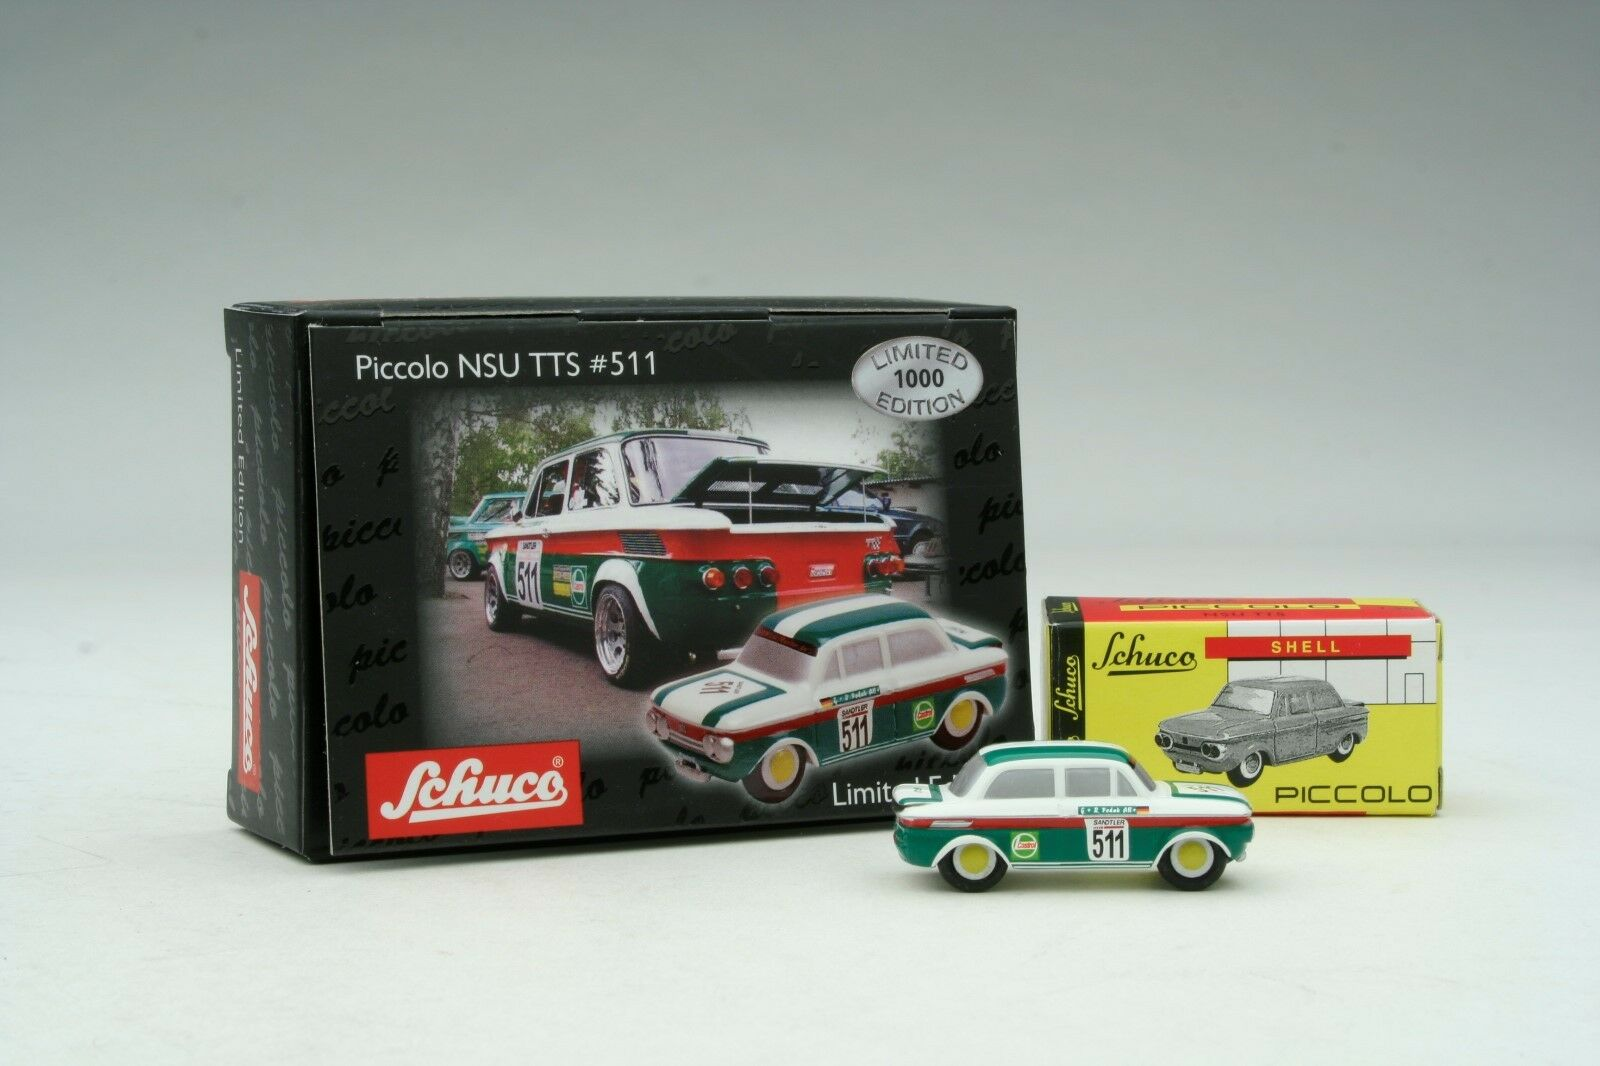 Schuco Piccolo Rally Racing Kollektion NSU TTS